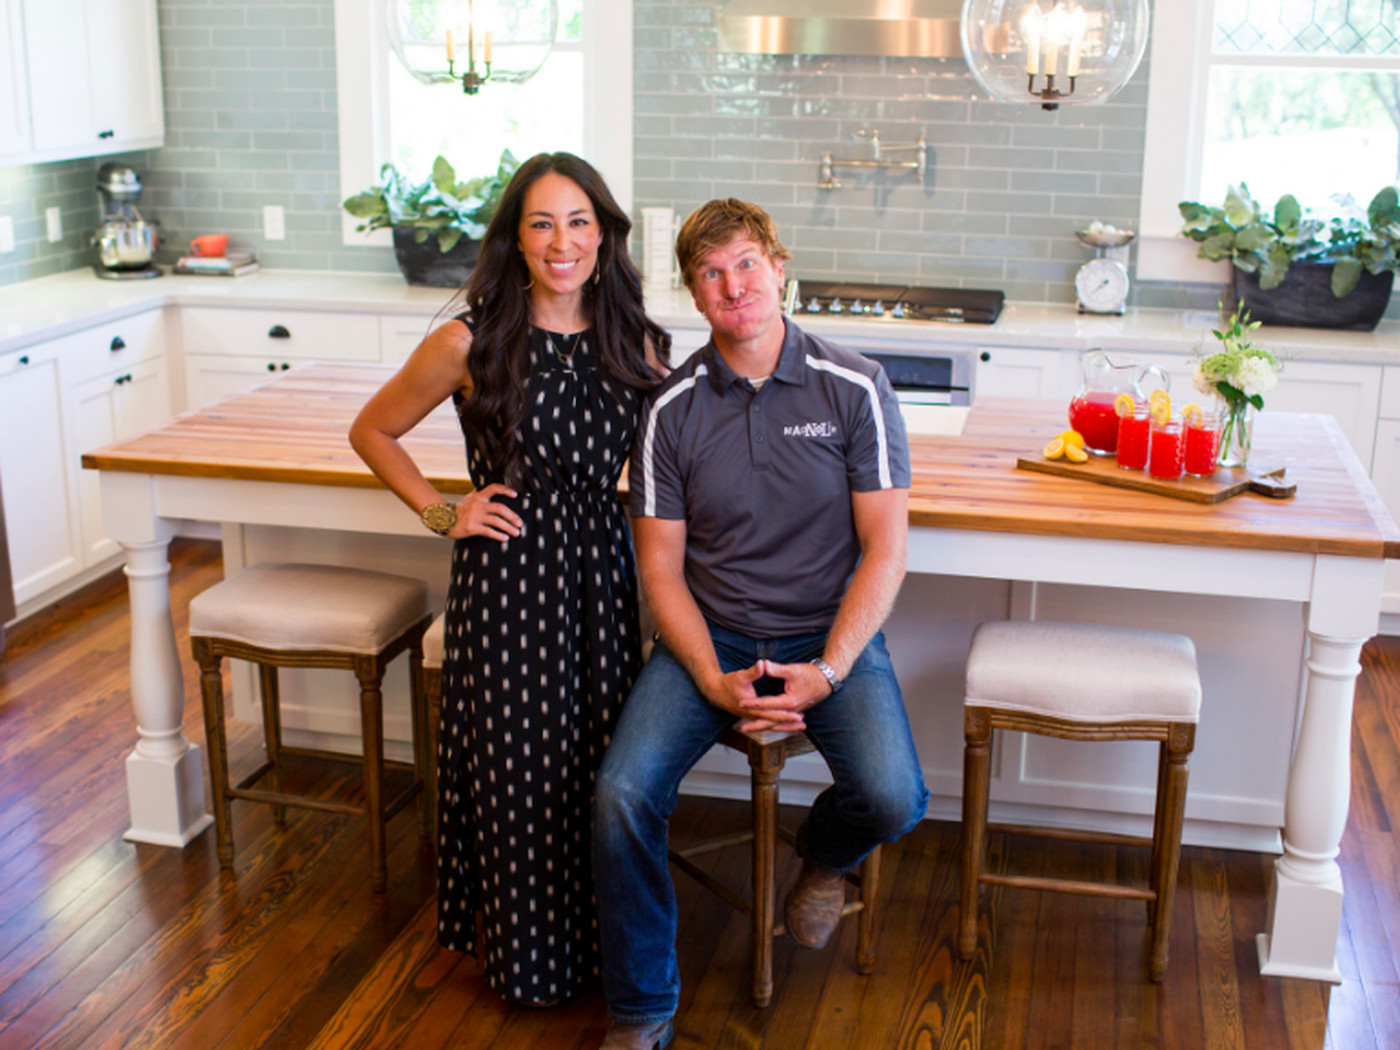 Fixer Upper Hosts Say They Want To Make Dream Homes Not Airbnb Rentals The Verge